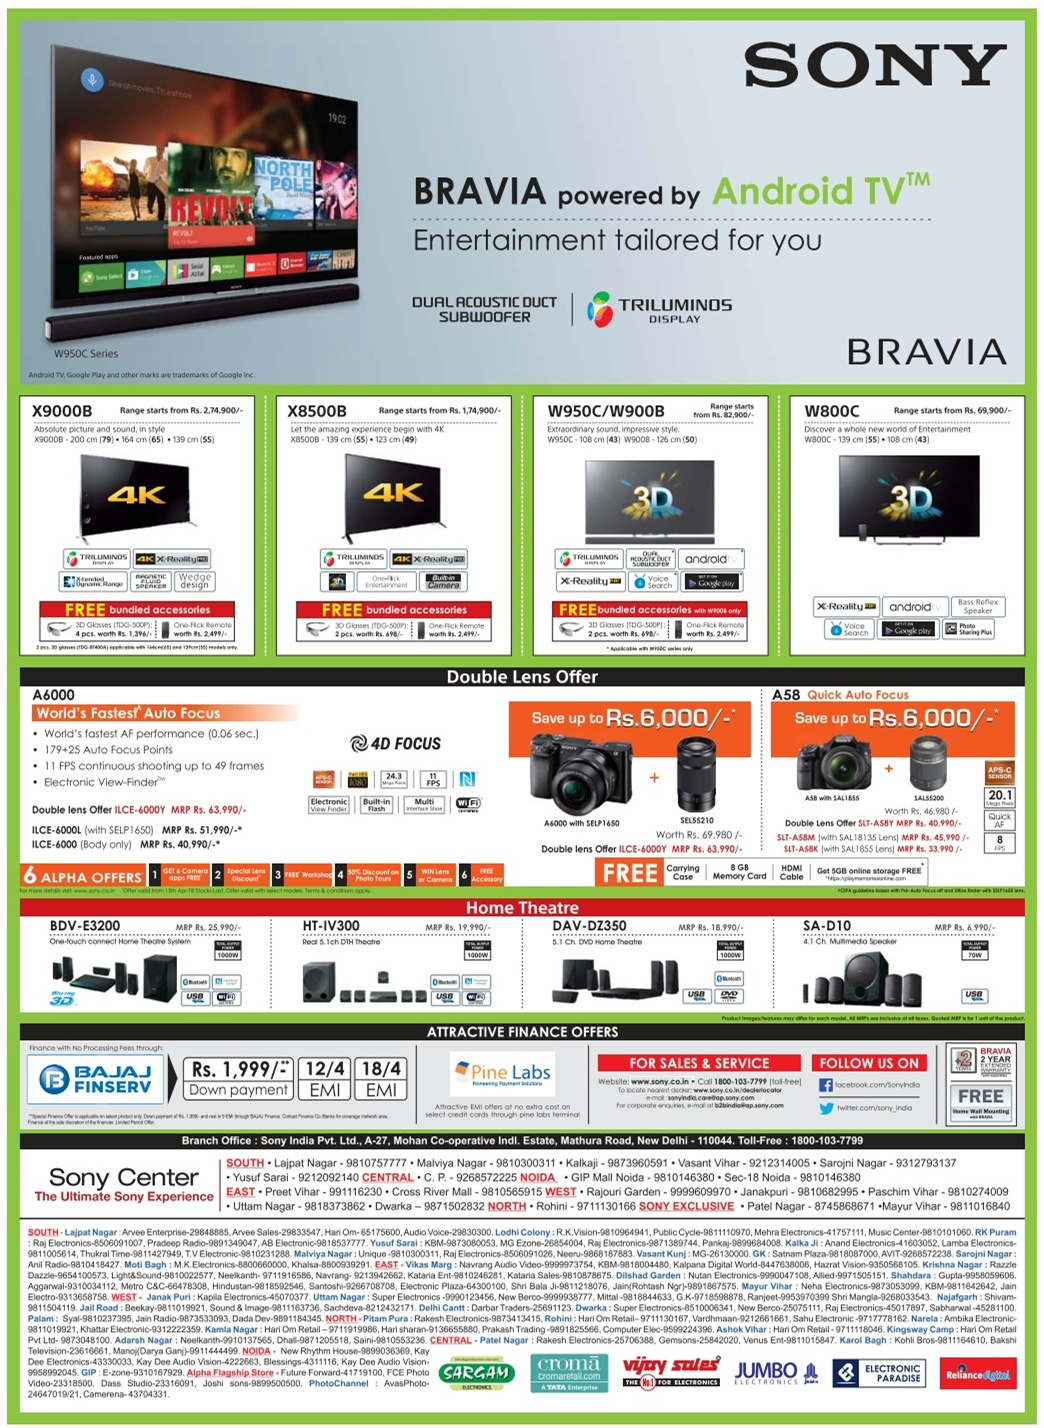 Latest Online Offers & Deals To Buy TVs Online in India If you wish to buy a television you can purchase them online instead of exploring the stores here and there. Online shopping helps you get the best discounts on televisions coming from top brands such as Samsung, LG, Sony.